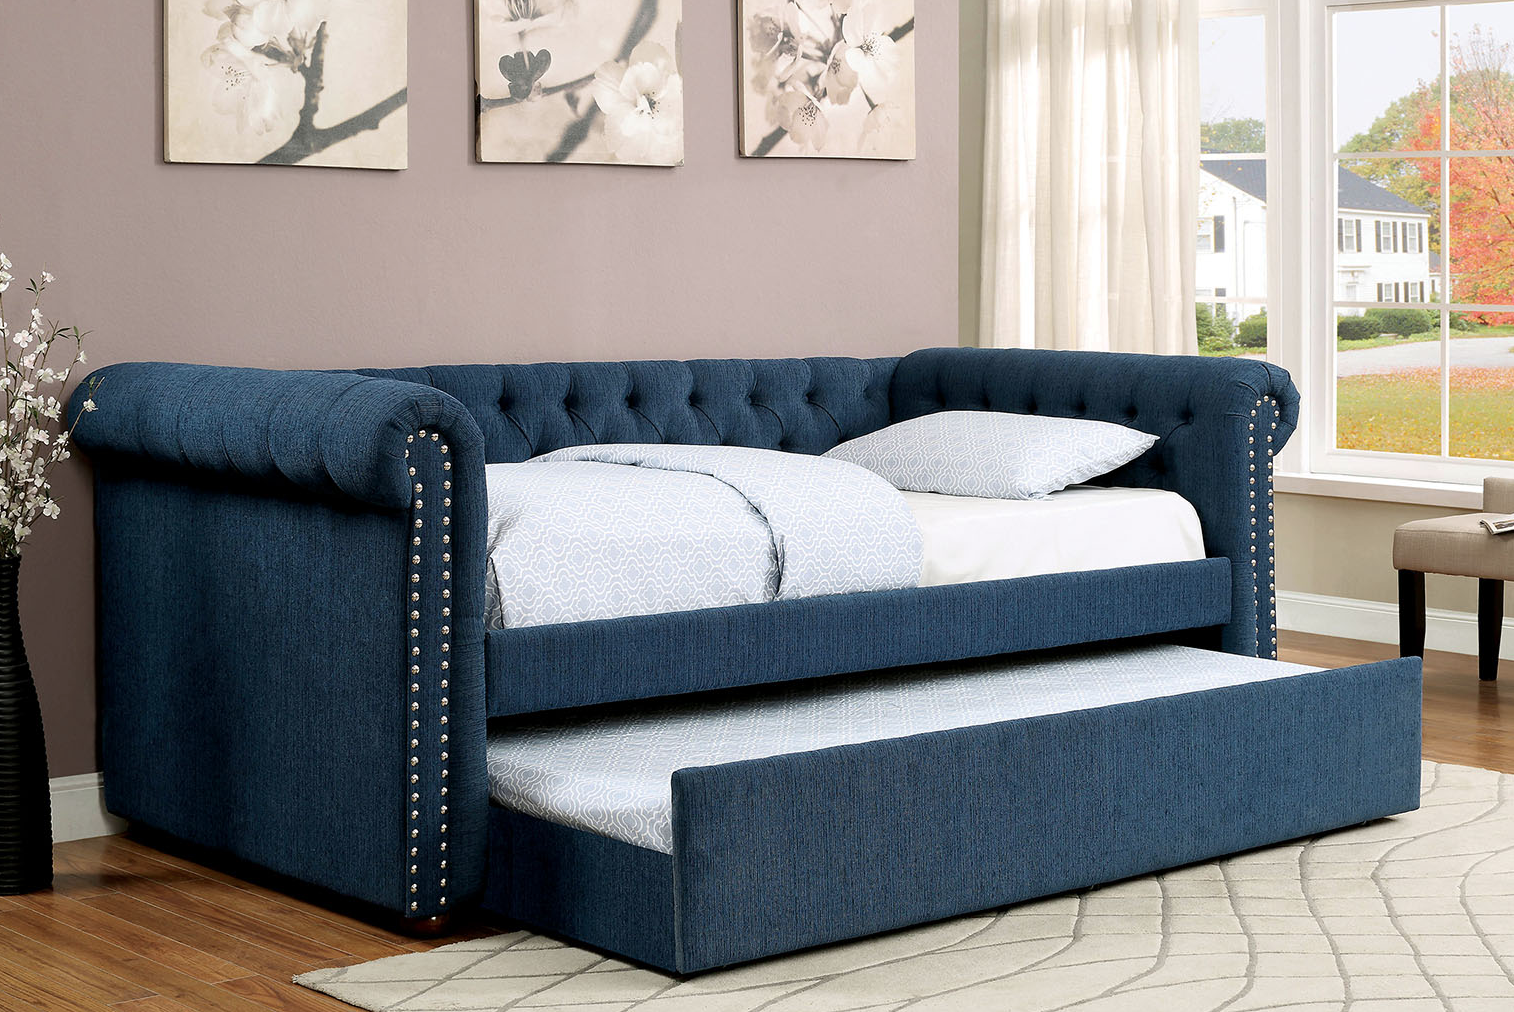 Chesterfield Tufted Daybed With Trundle In Dark Teal